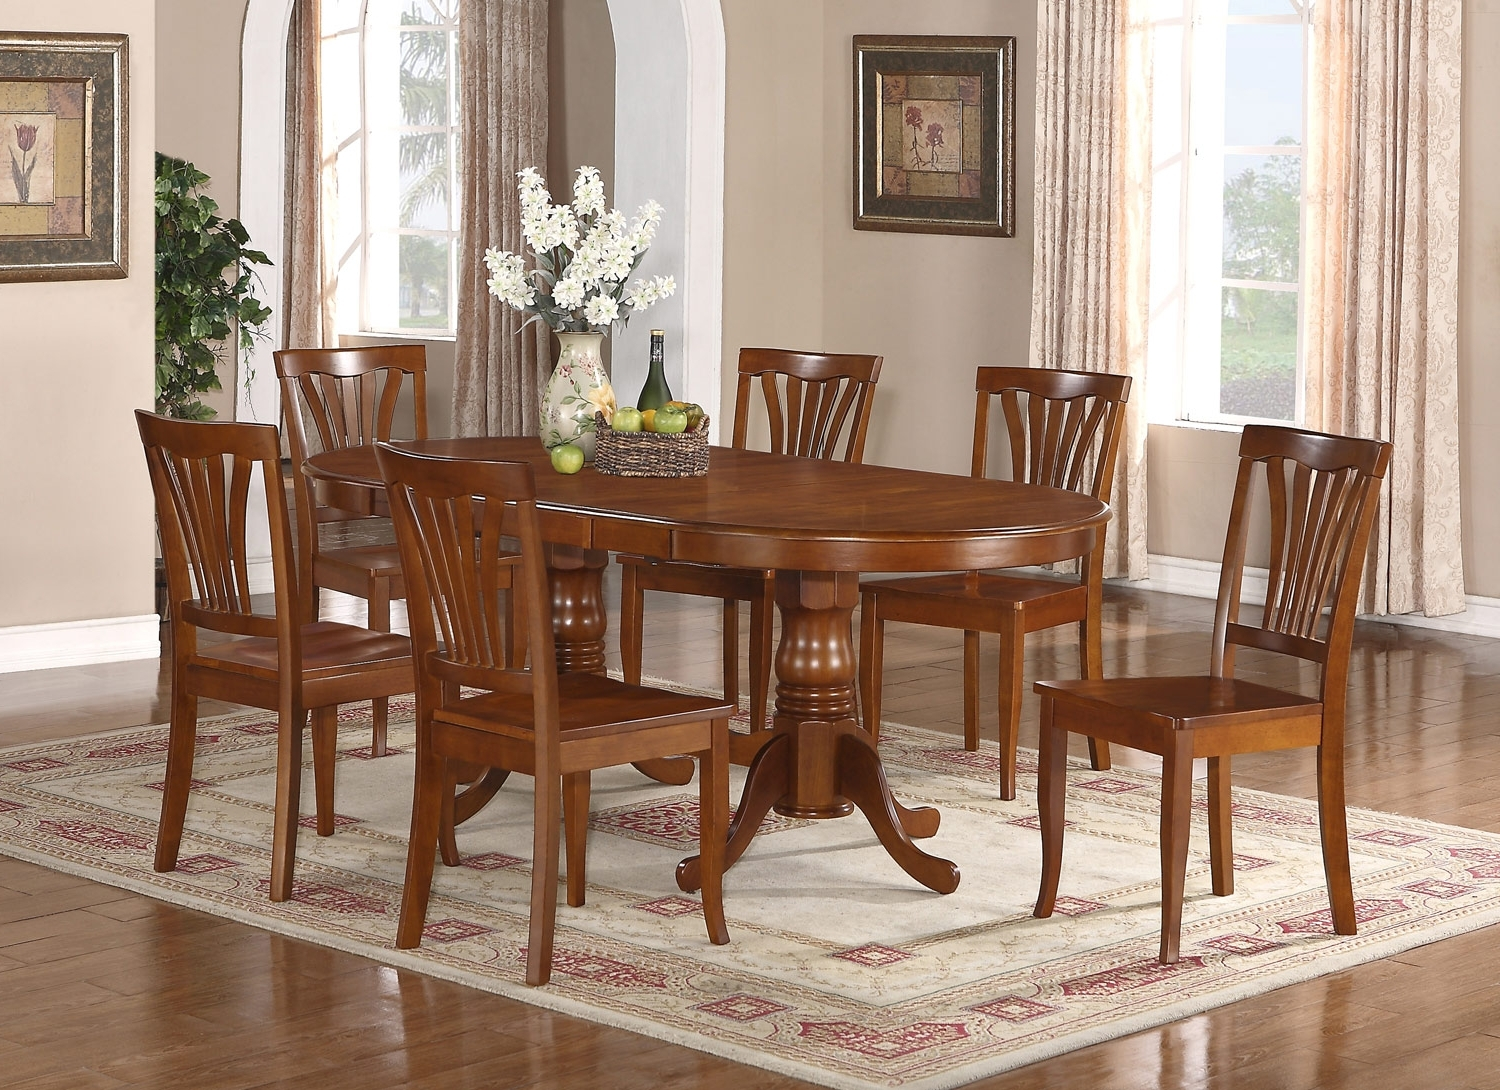 7Pc Oval Newton Dining Room Set Extension Leaf Table 6 Chairs 42 Inside Most Recently Released 6 Chair Dining Table Sets (View 4 of 25)